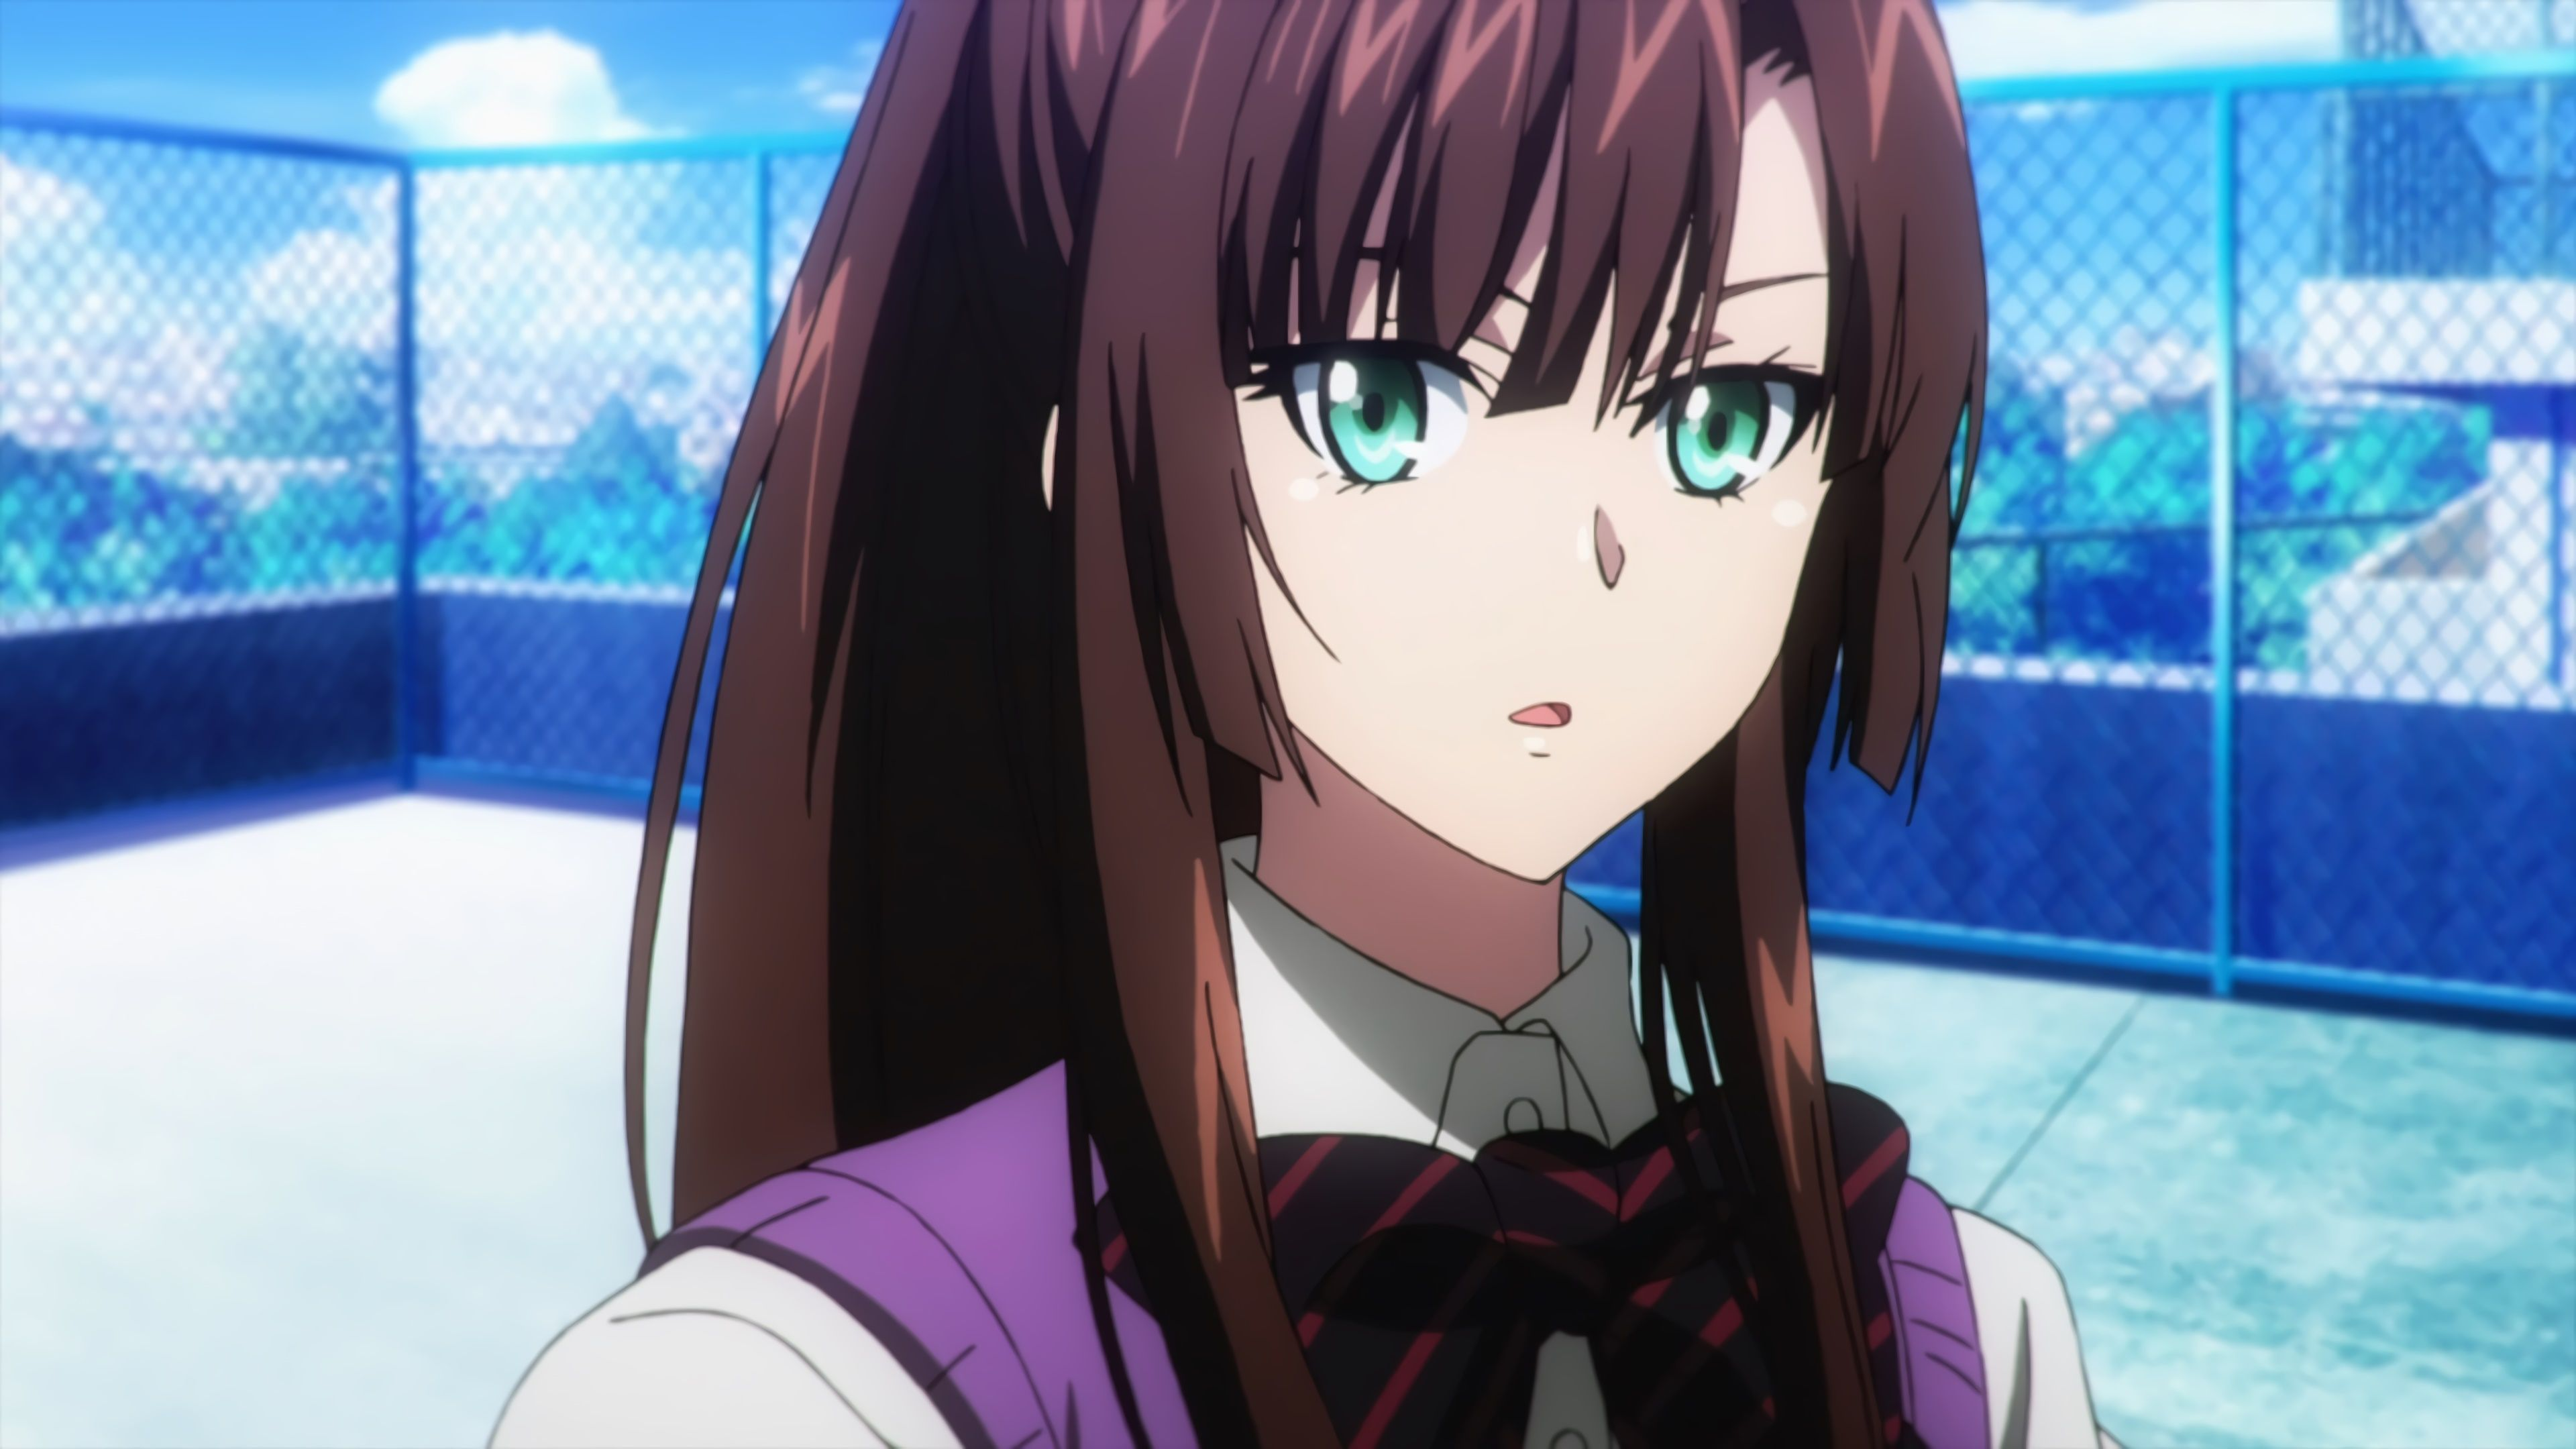 ボード「Sayaka Kirasaka strike the blood」のピン